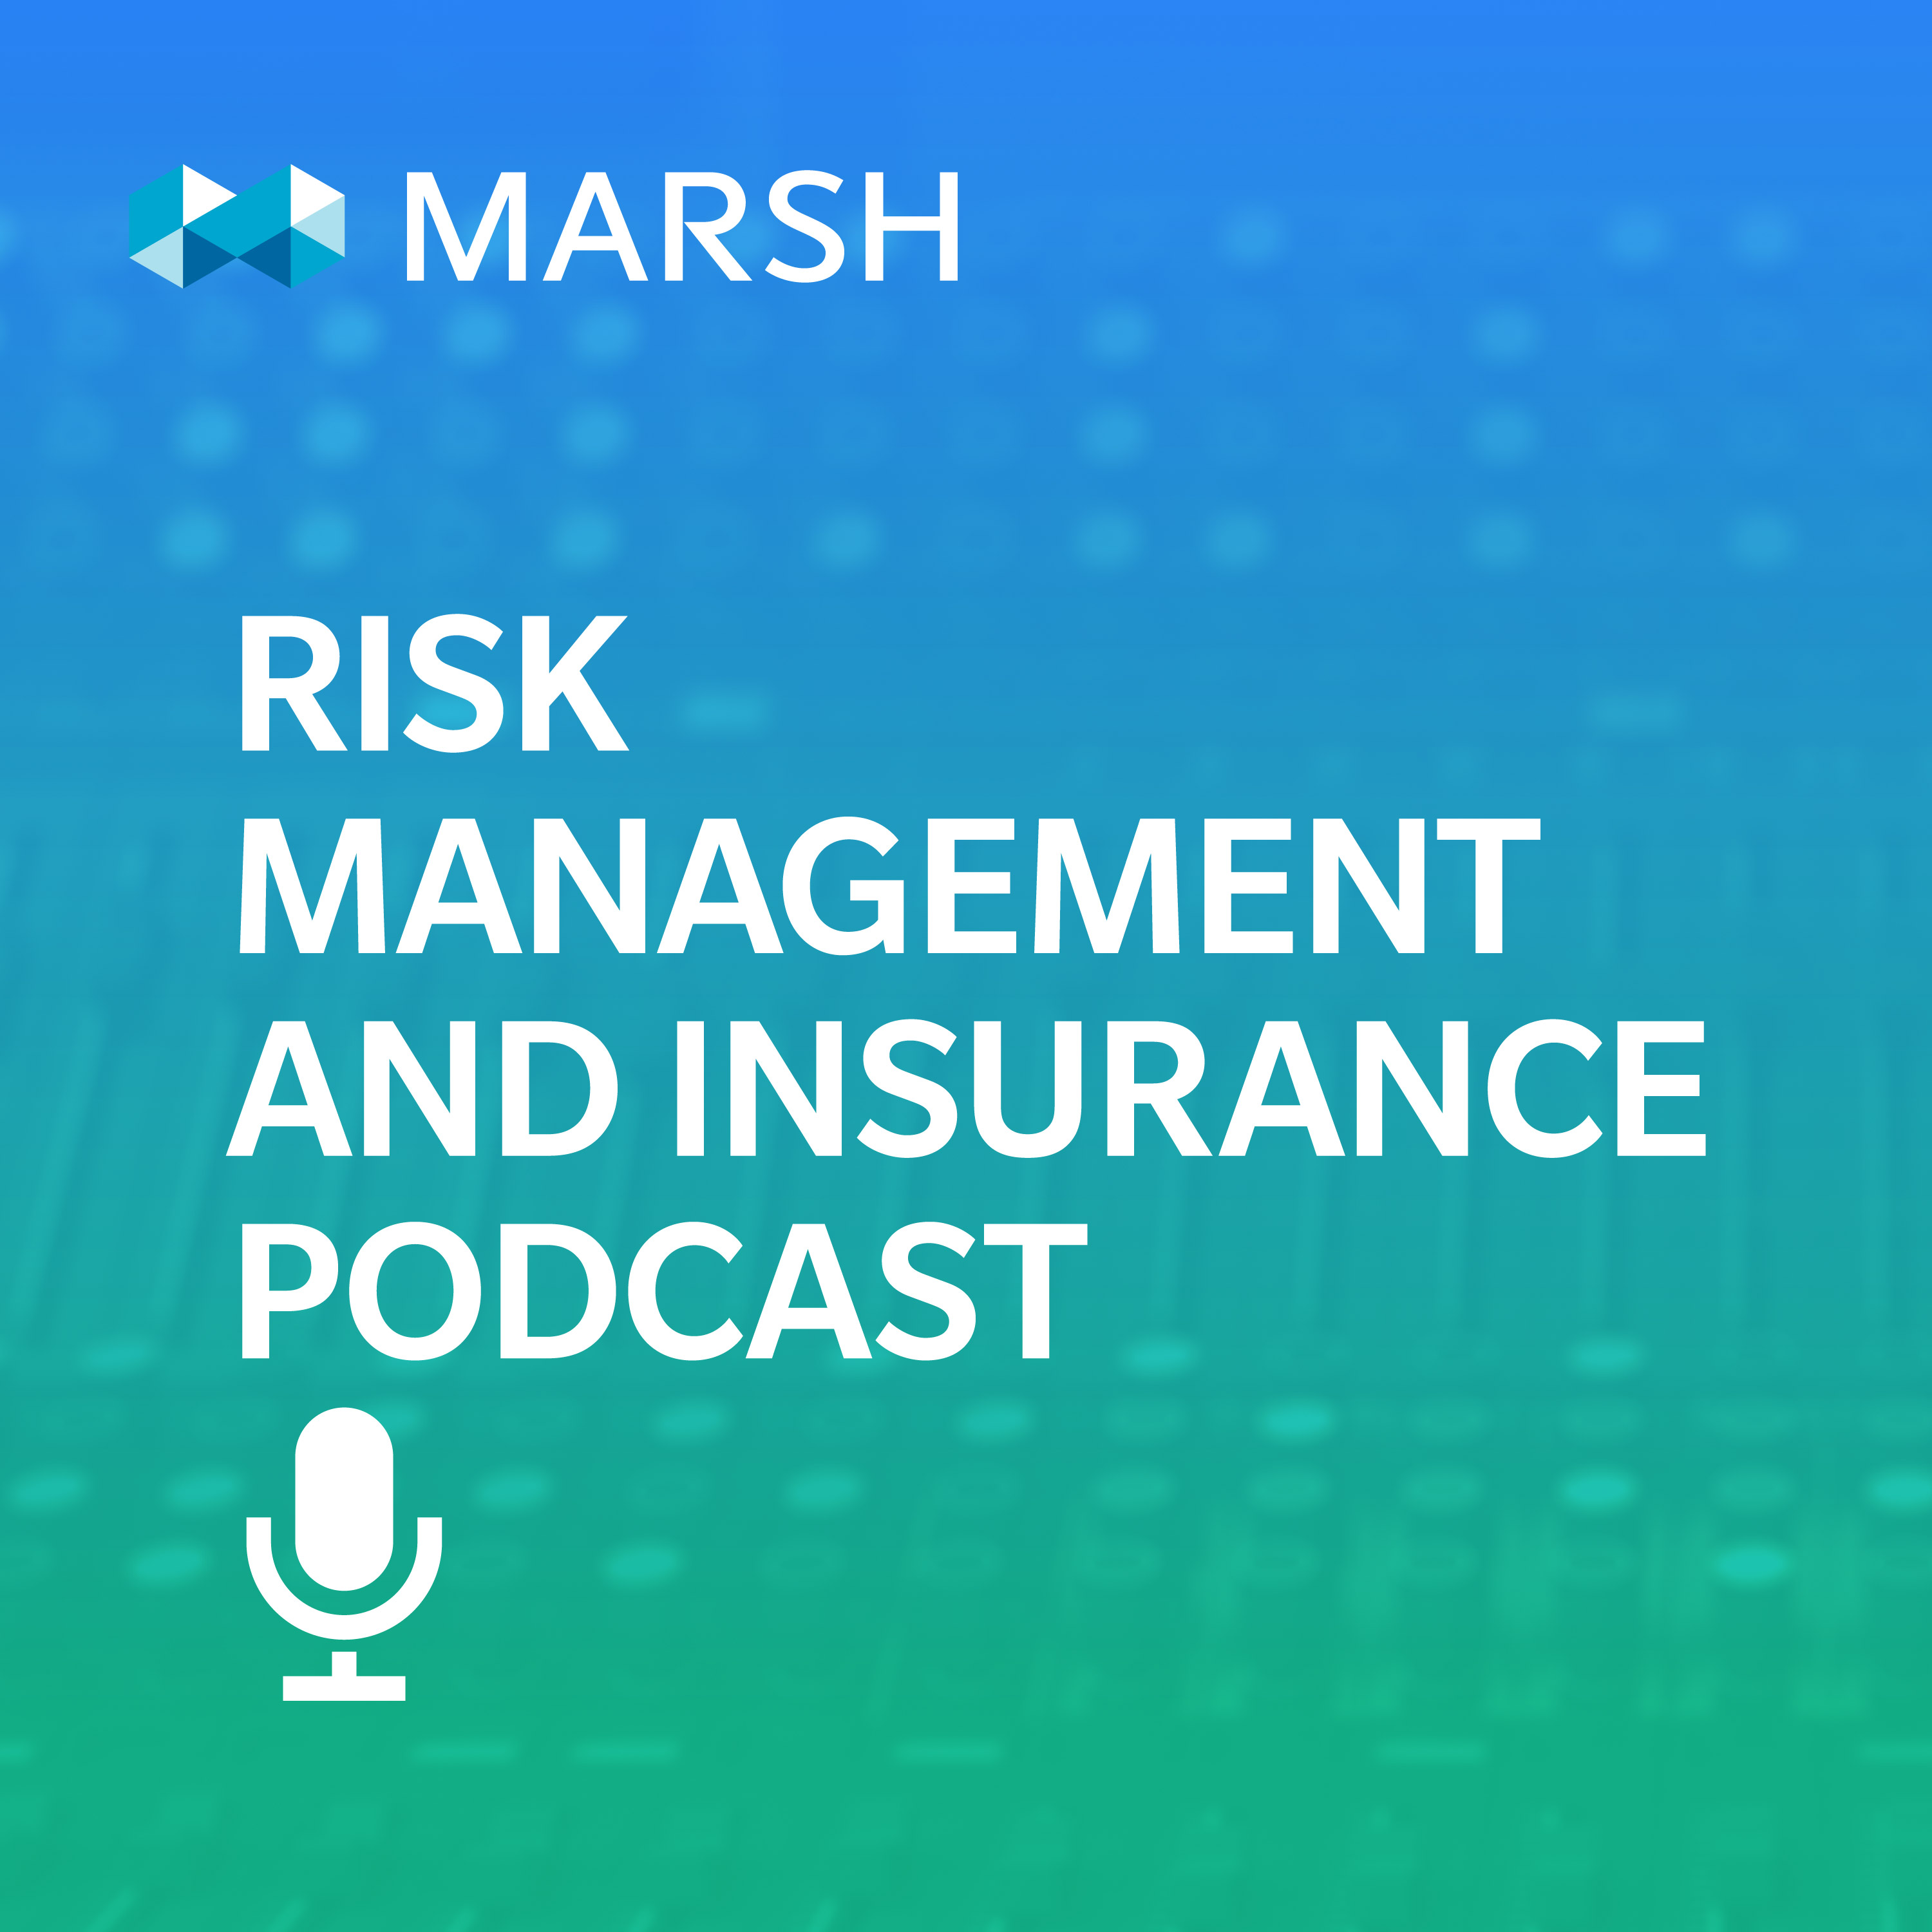 Risk Management and Insurance Podcast show art